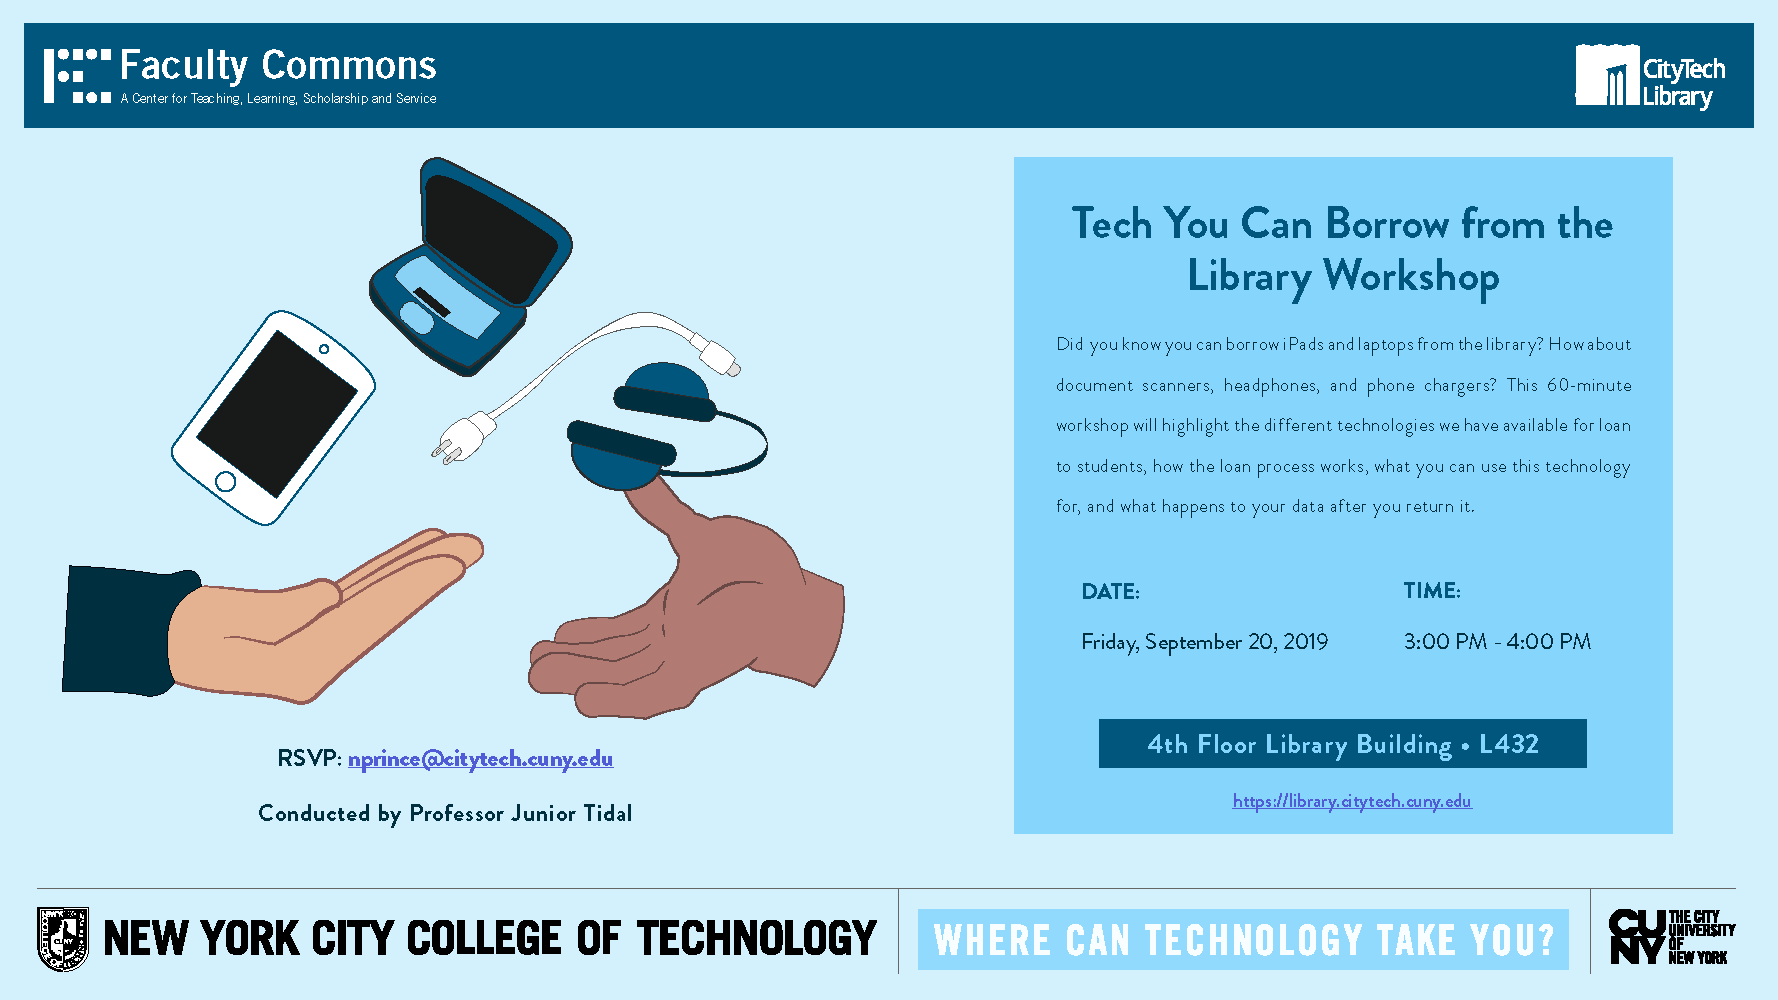 Tech You Can Borrow from the Library Workshop 5